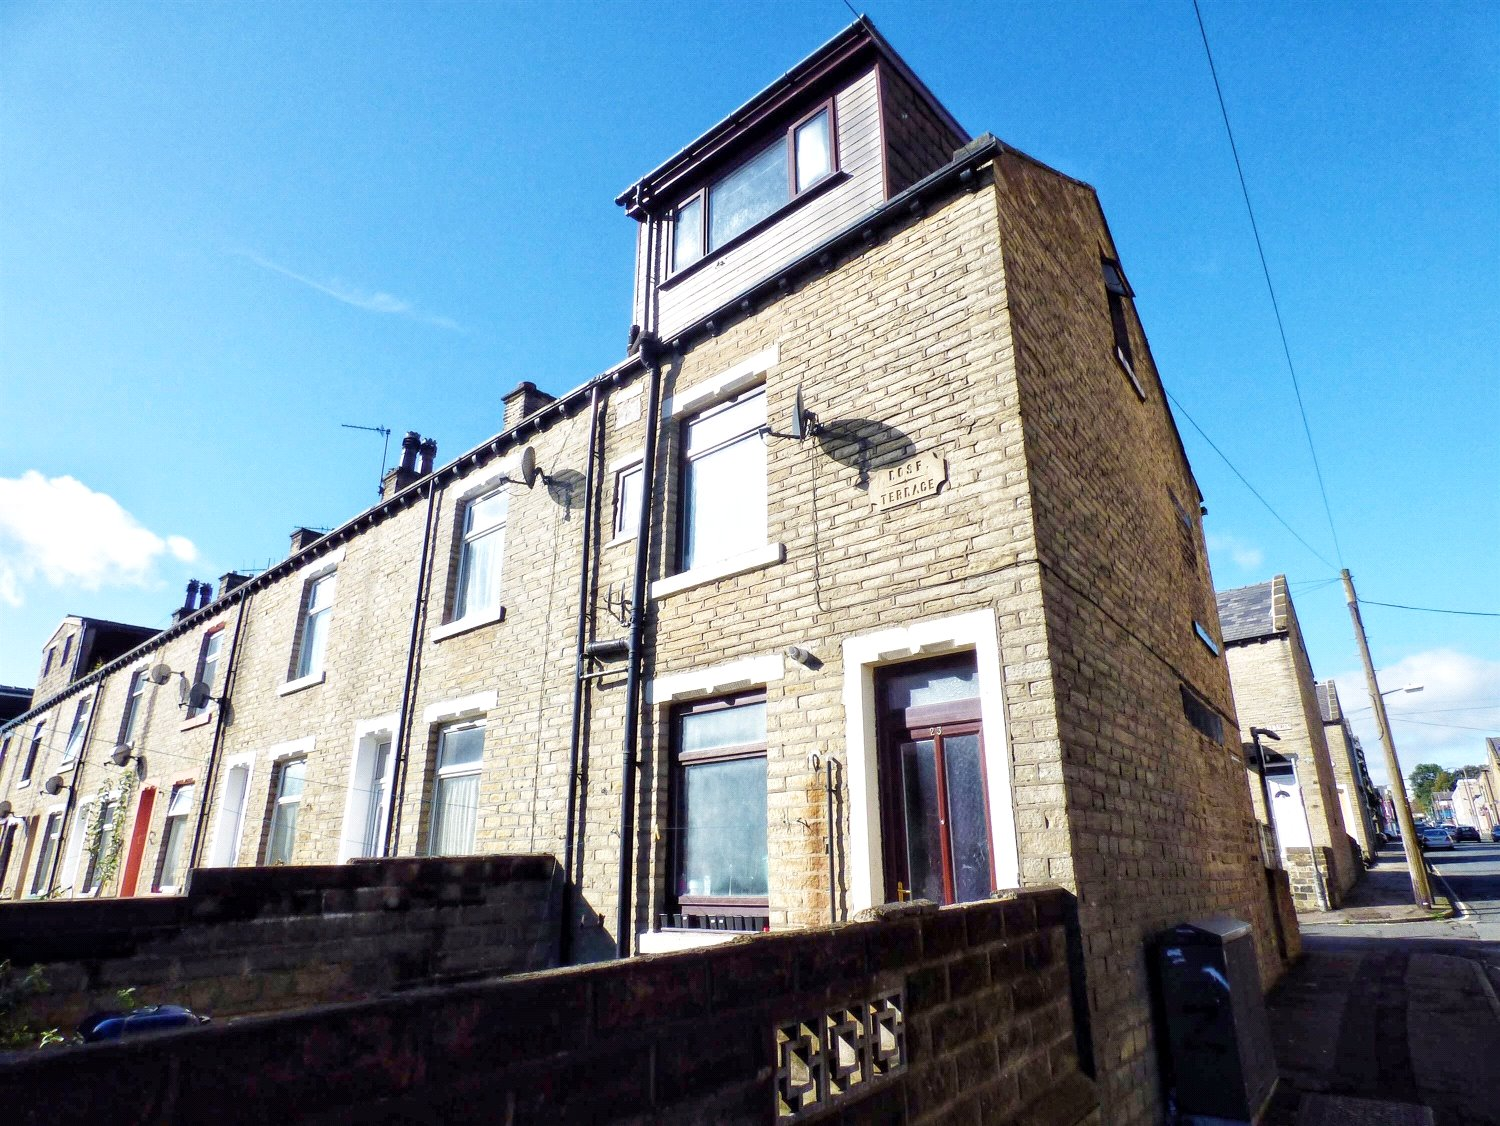 3 Bedrooms End Of Terrace House for sale in Rose Terrace, Pellon, HALIFAX, West Yorkshire, HX1